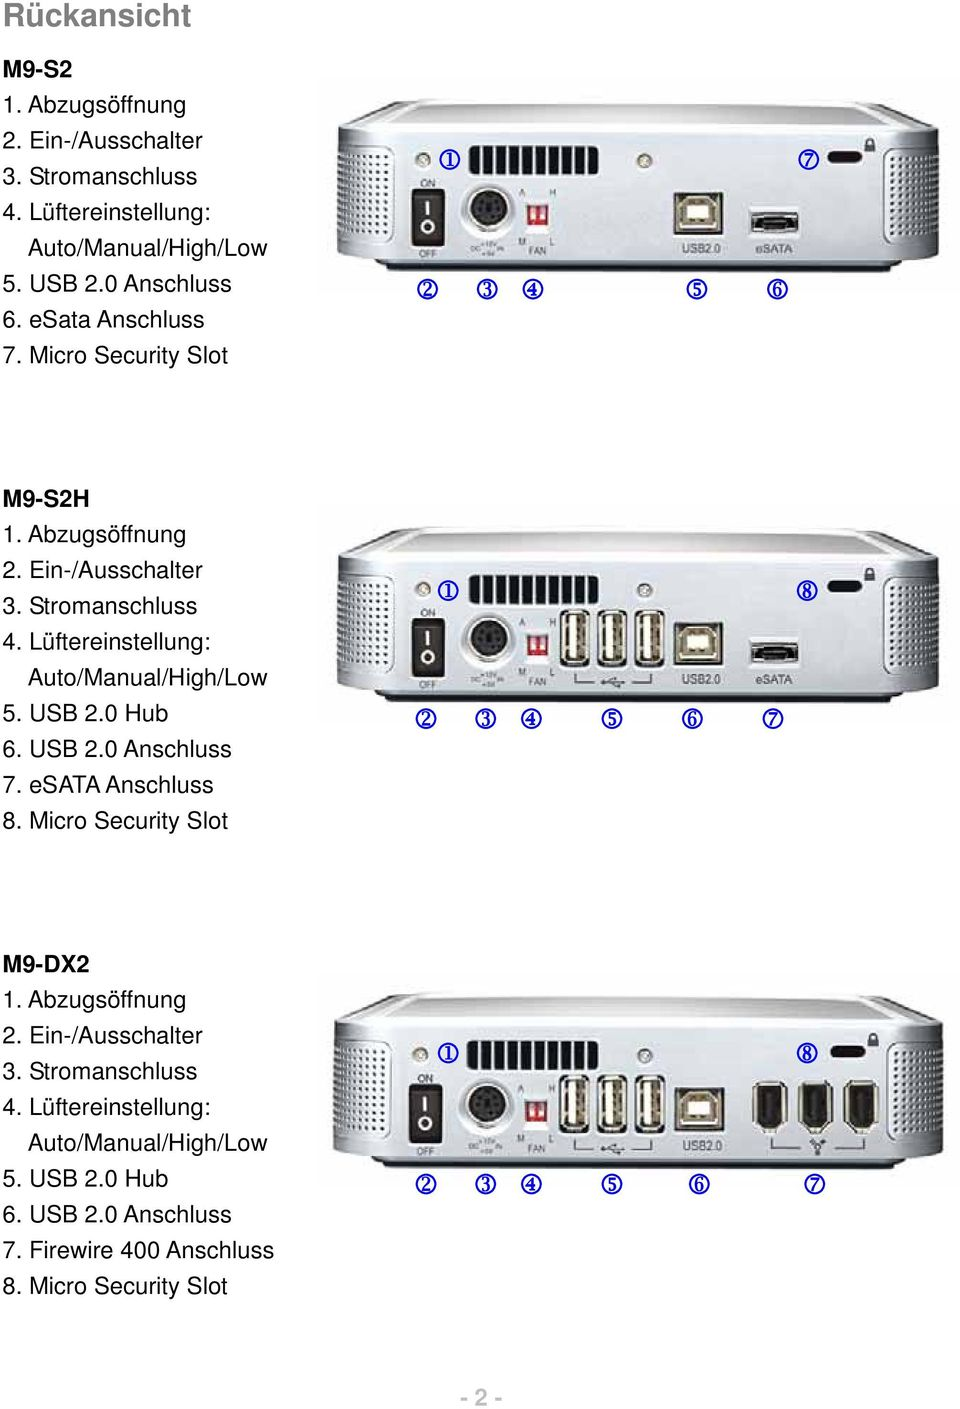 Lüftereinstellung: Auto/Manual/High/Low 5. USB 2.0 Hub 6. USB 2.0 Anschluss 7. esata Anschluss 8. Micro Security Slot 1 8 2 3 4 5 6 7 M9-DX2 1.